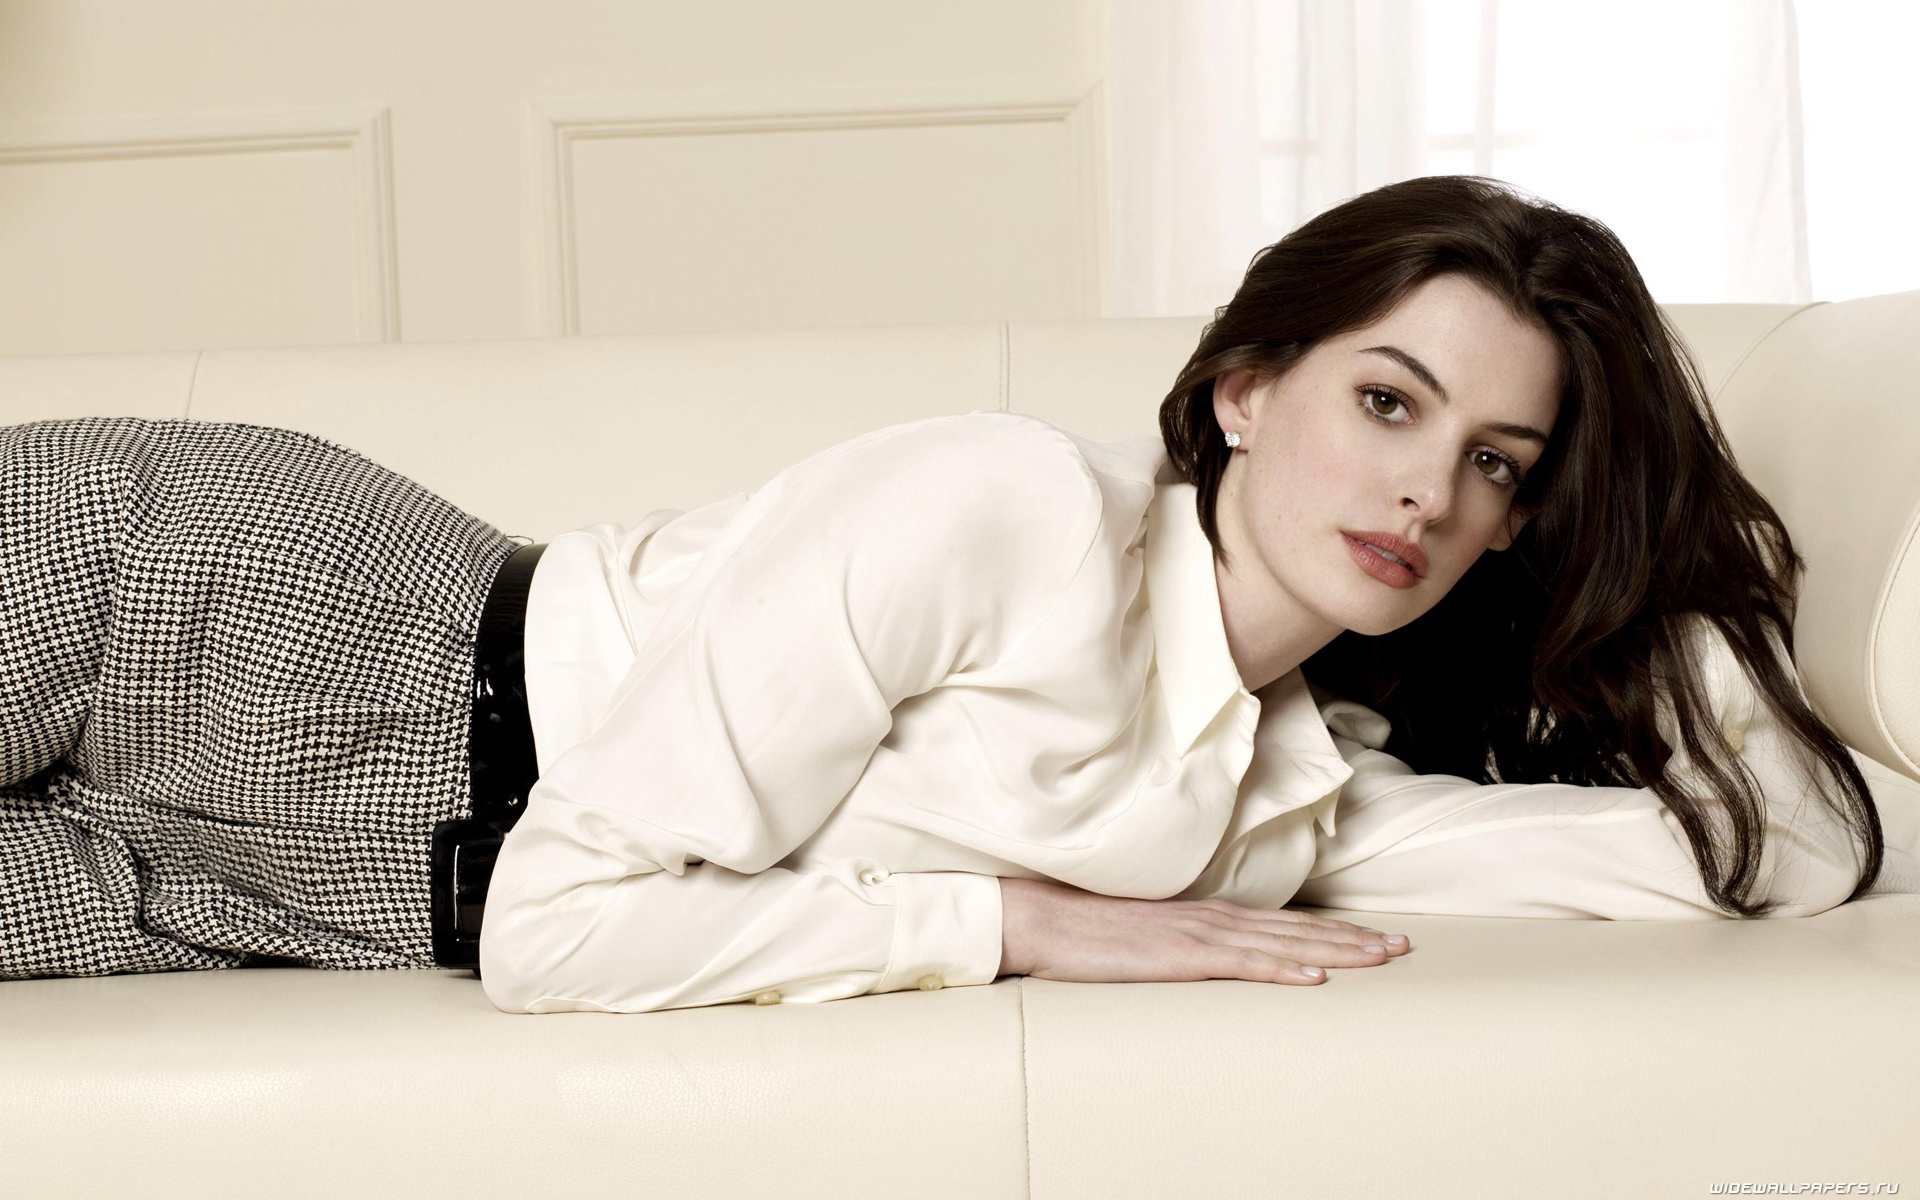 Anne Hathaway Wallpaper For Computer